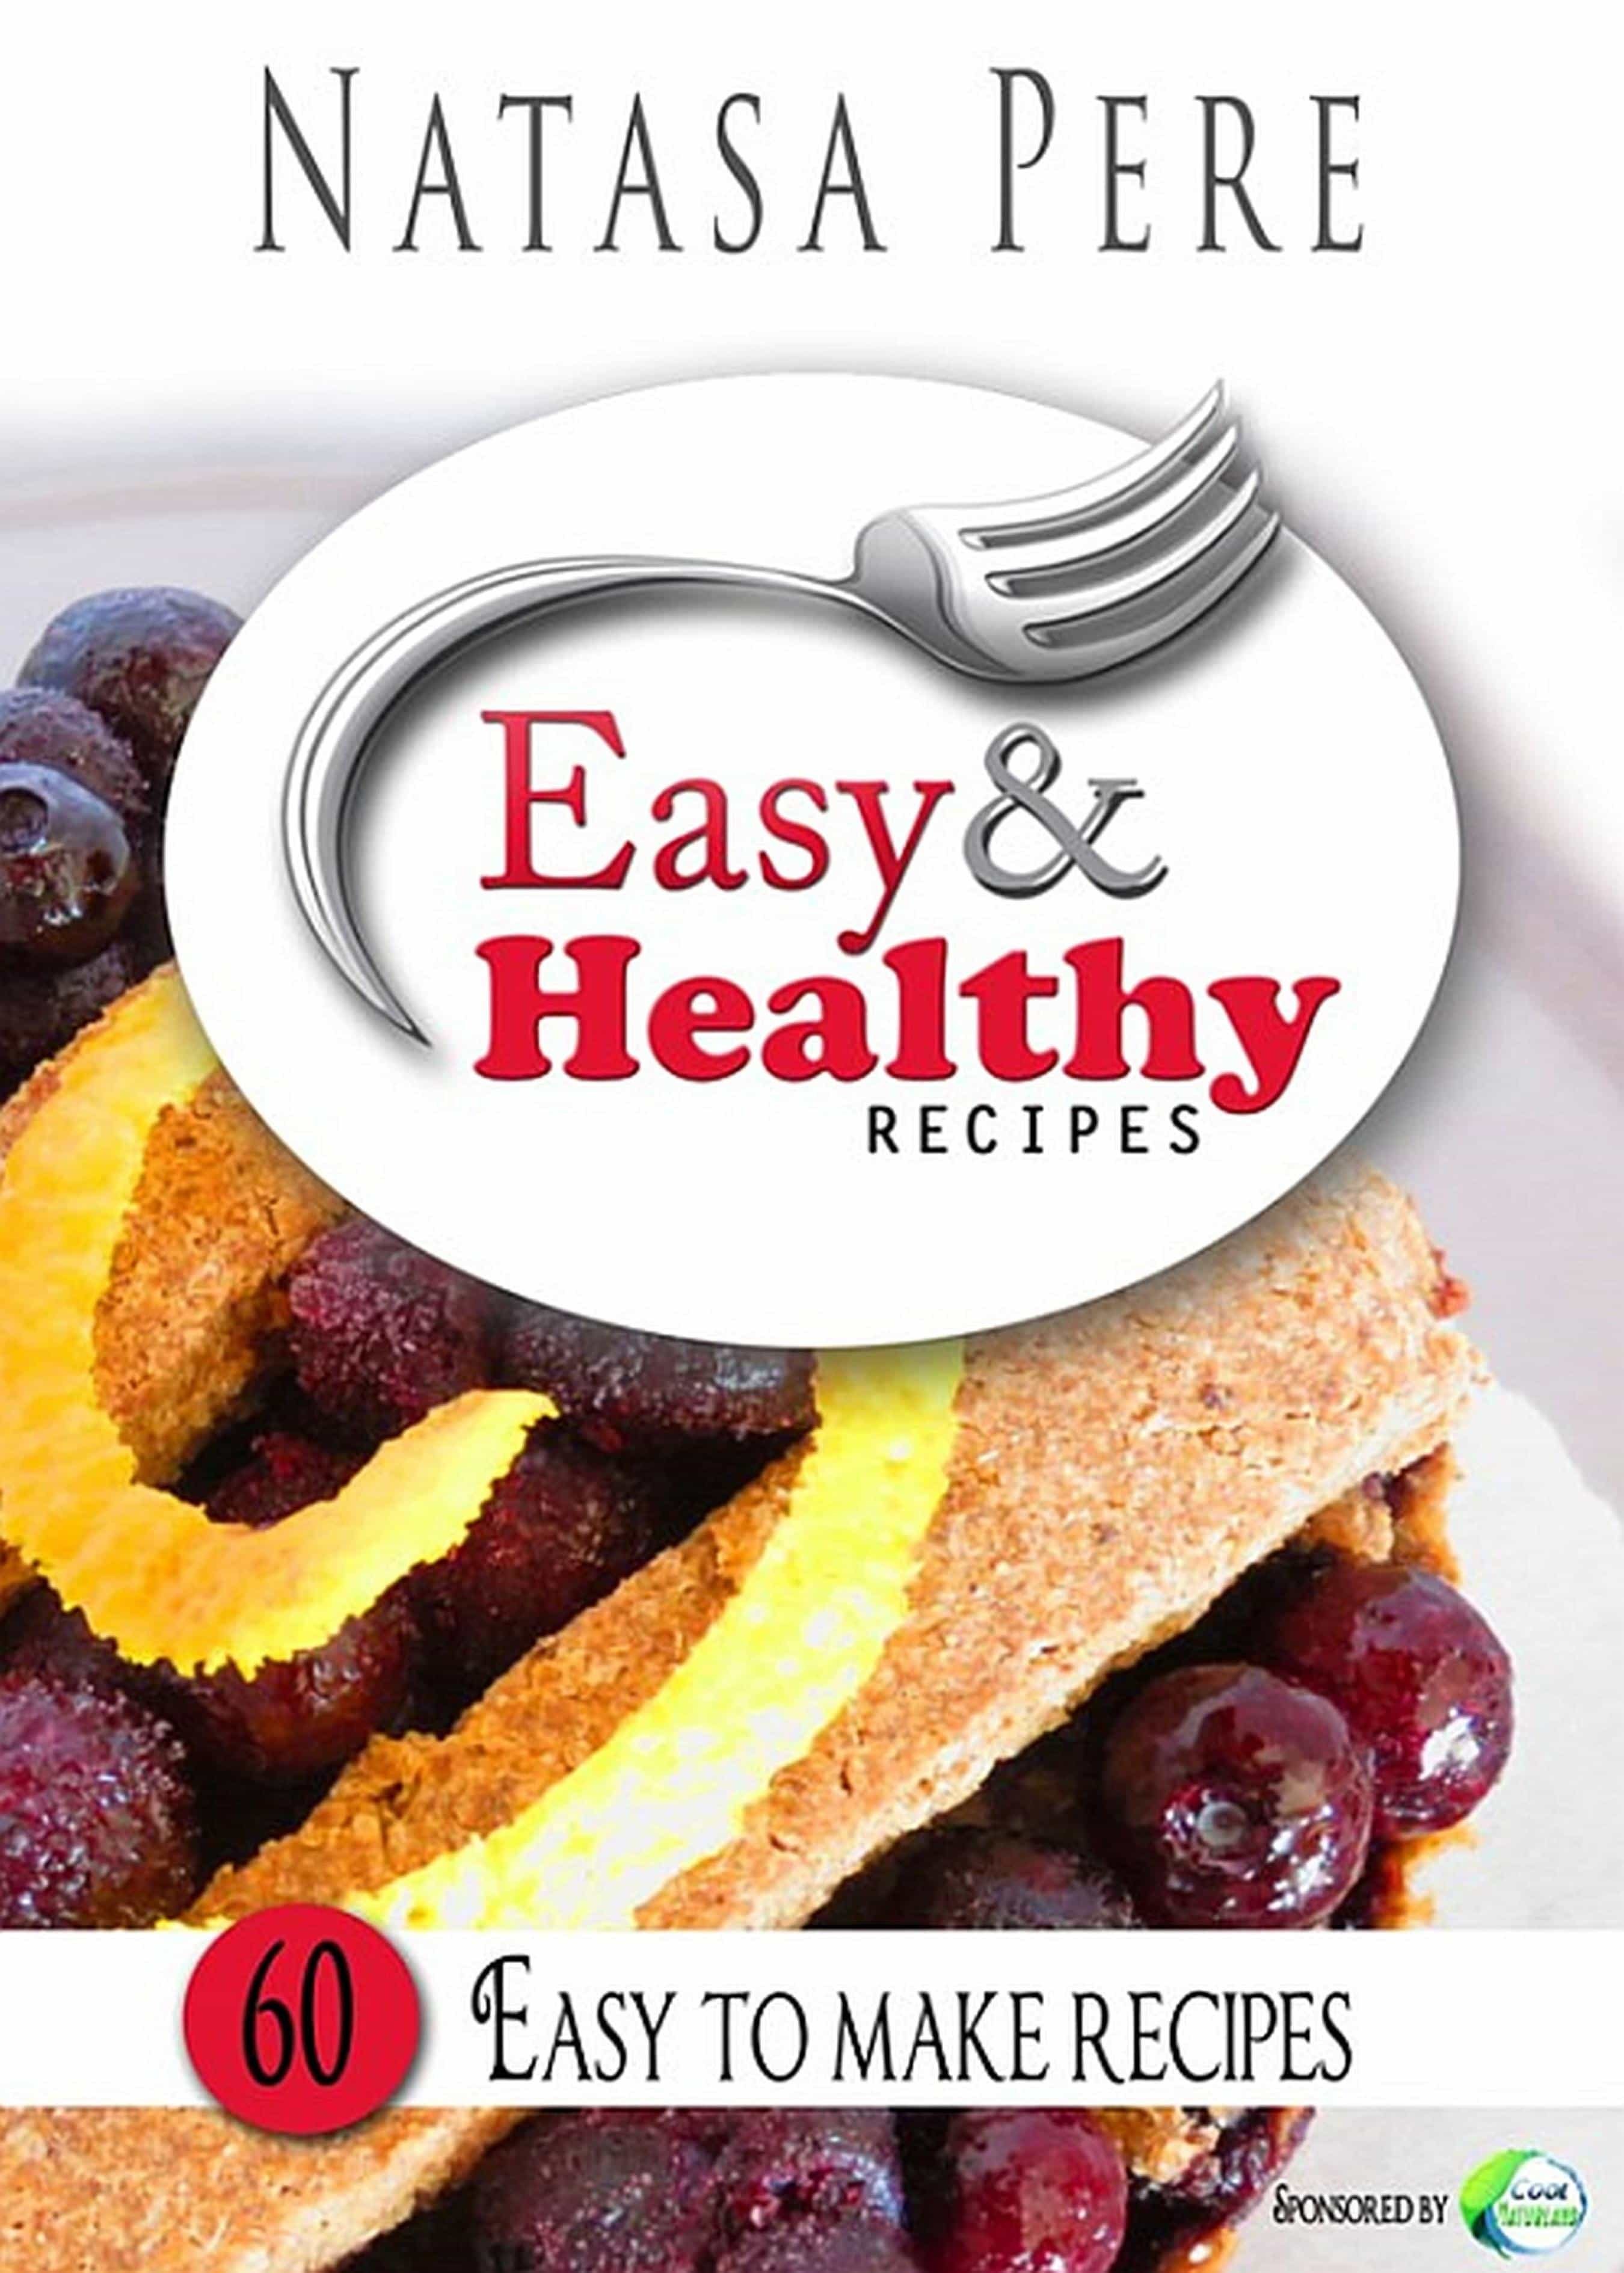 Easy healthy recipes ebook natasa pere descargar libro pdf o easy healthy recipes ebook natasa pere 9783958494695 forumfinder Image collections